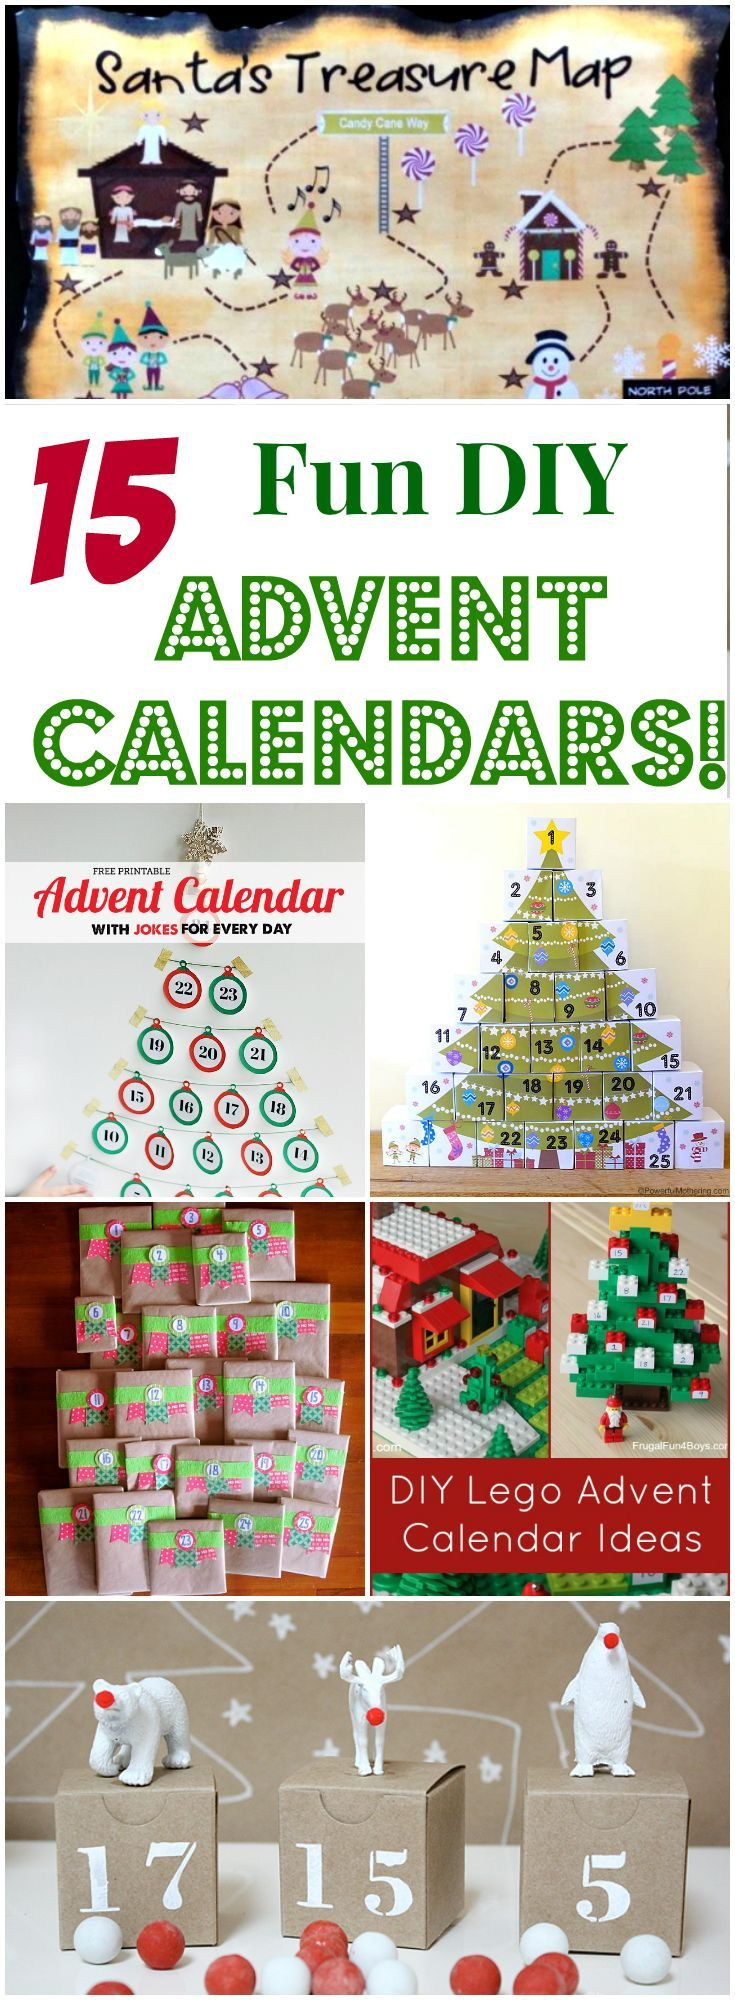 15 Fun DIY Advent Calendars for Kids! A collection of incredibly fun and interactive Christmas Countdowns you can make at home!